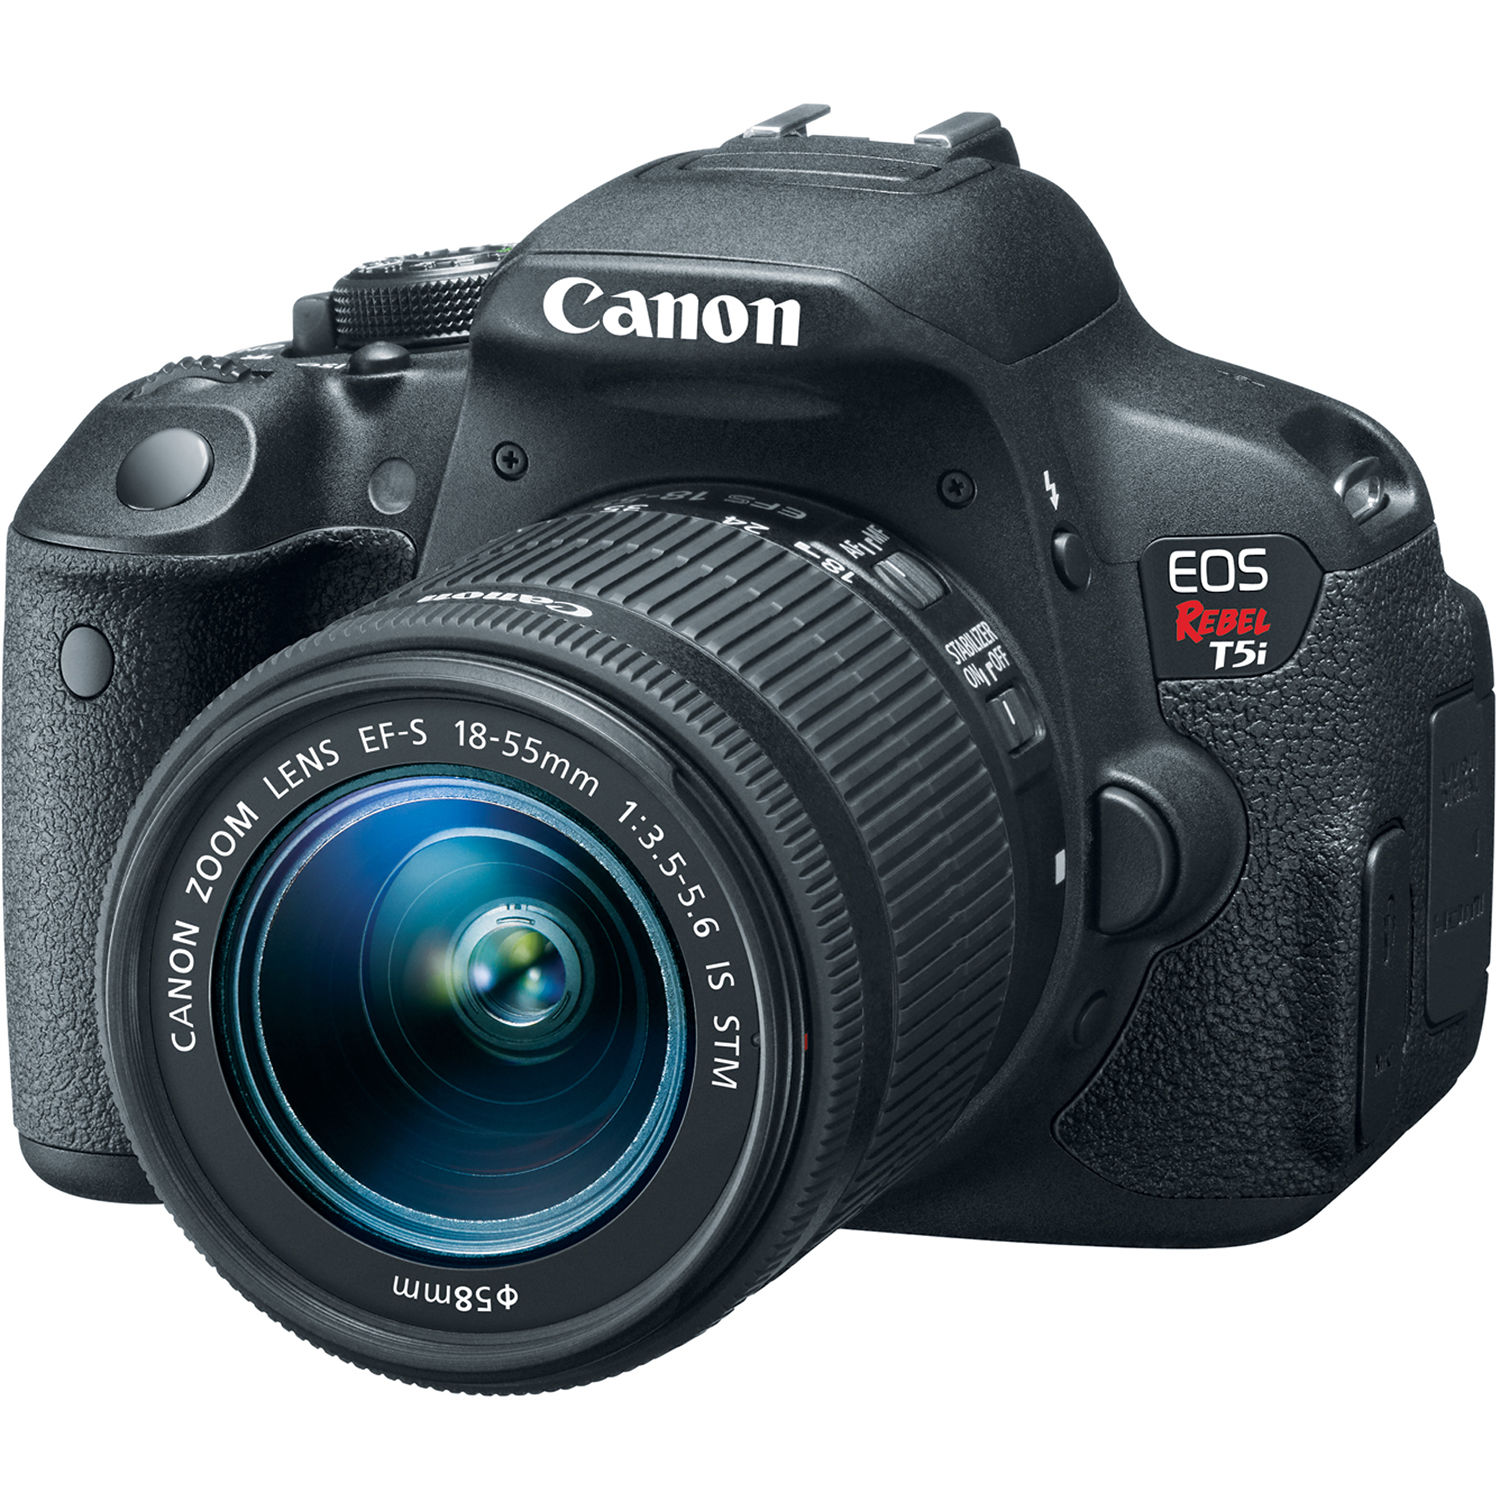 Canon T5i EOS Rebel DSLR Camera with 18 55mm Lens 8595B003 B H Canon EOS Rebel T5i DSLR Camera with 18 55mm Lens